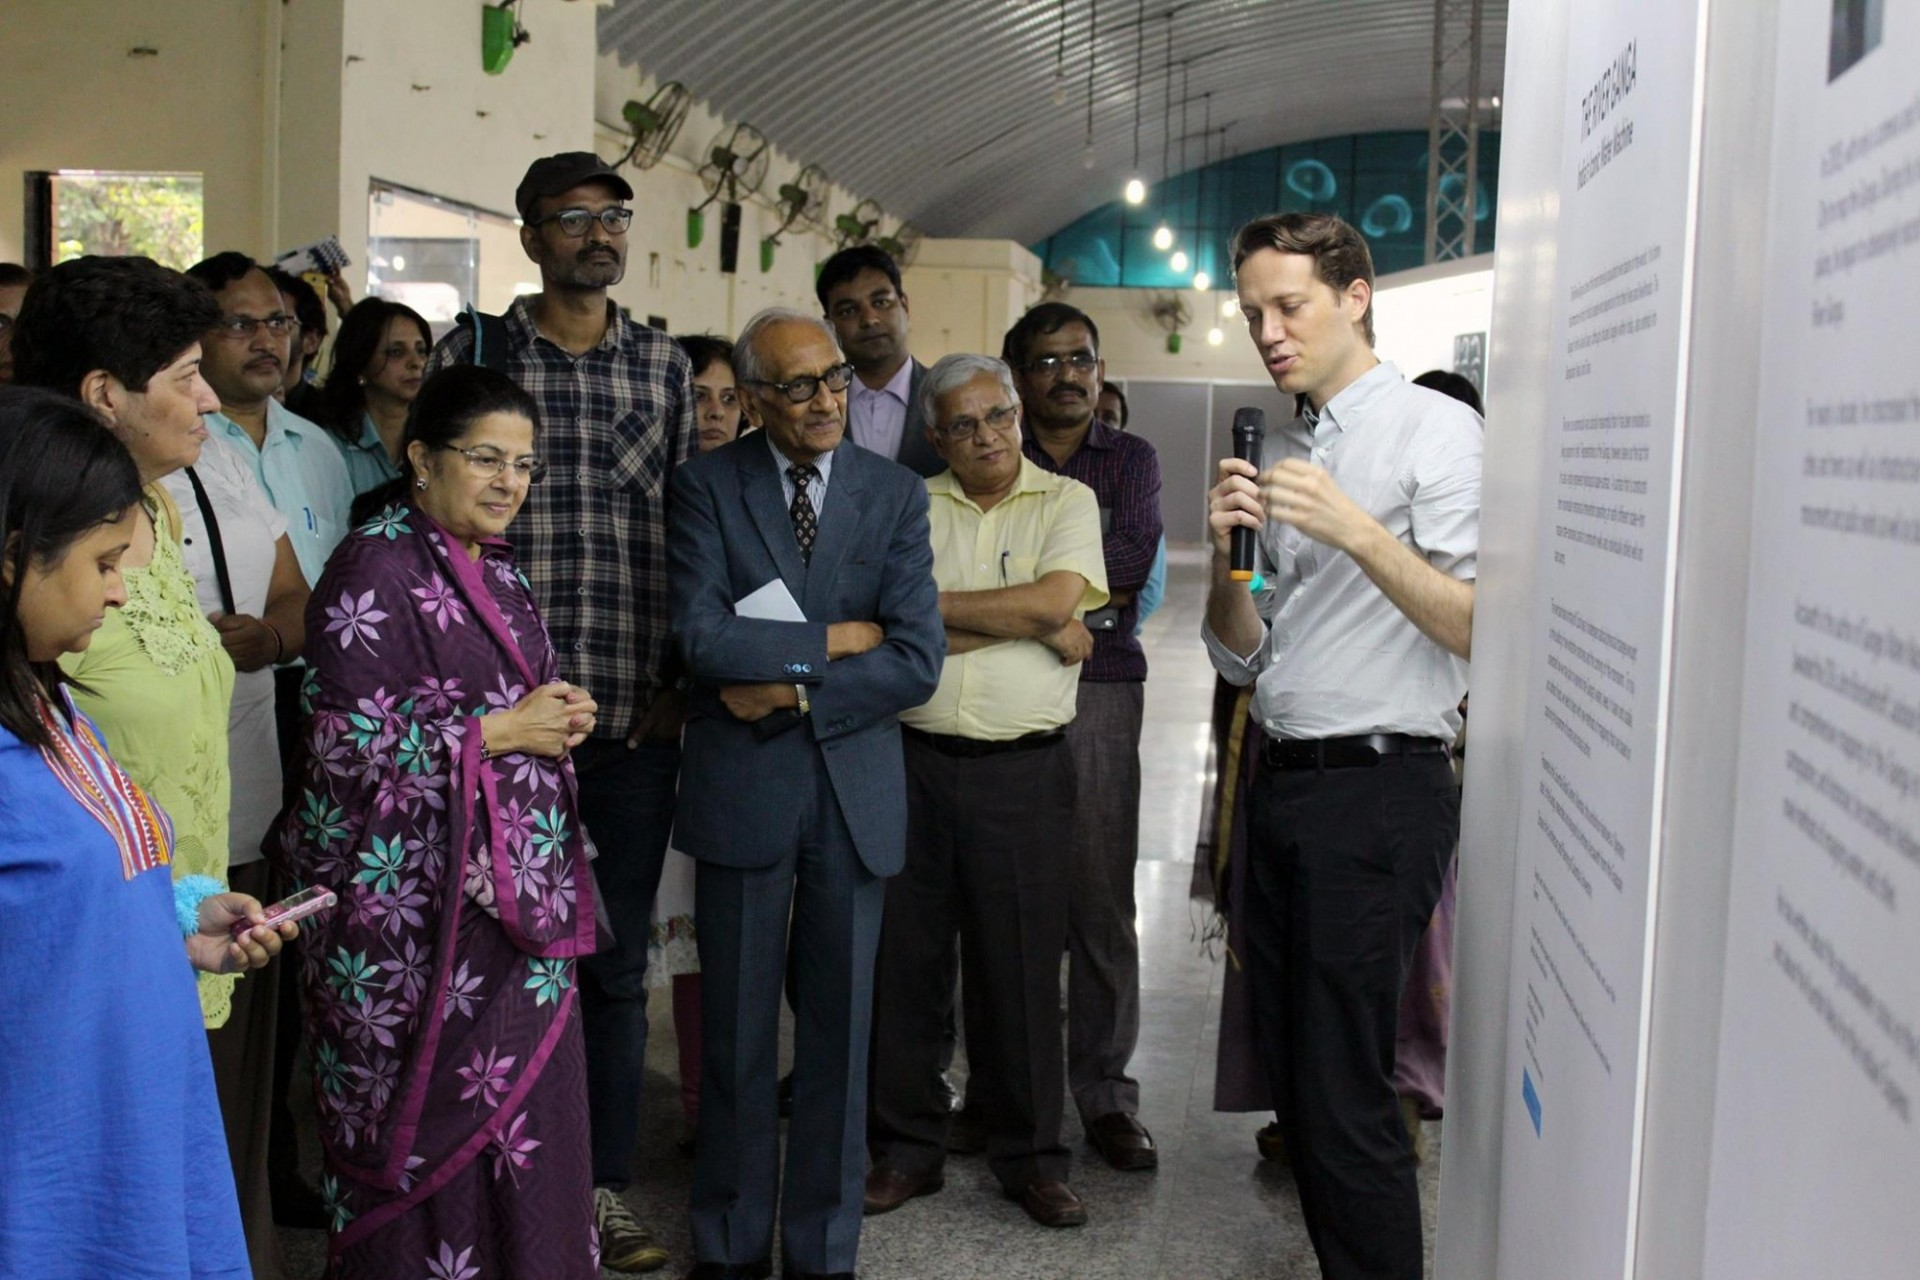 picture from a launch exhibit in Mumbai